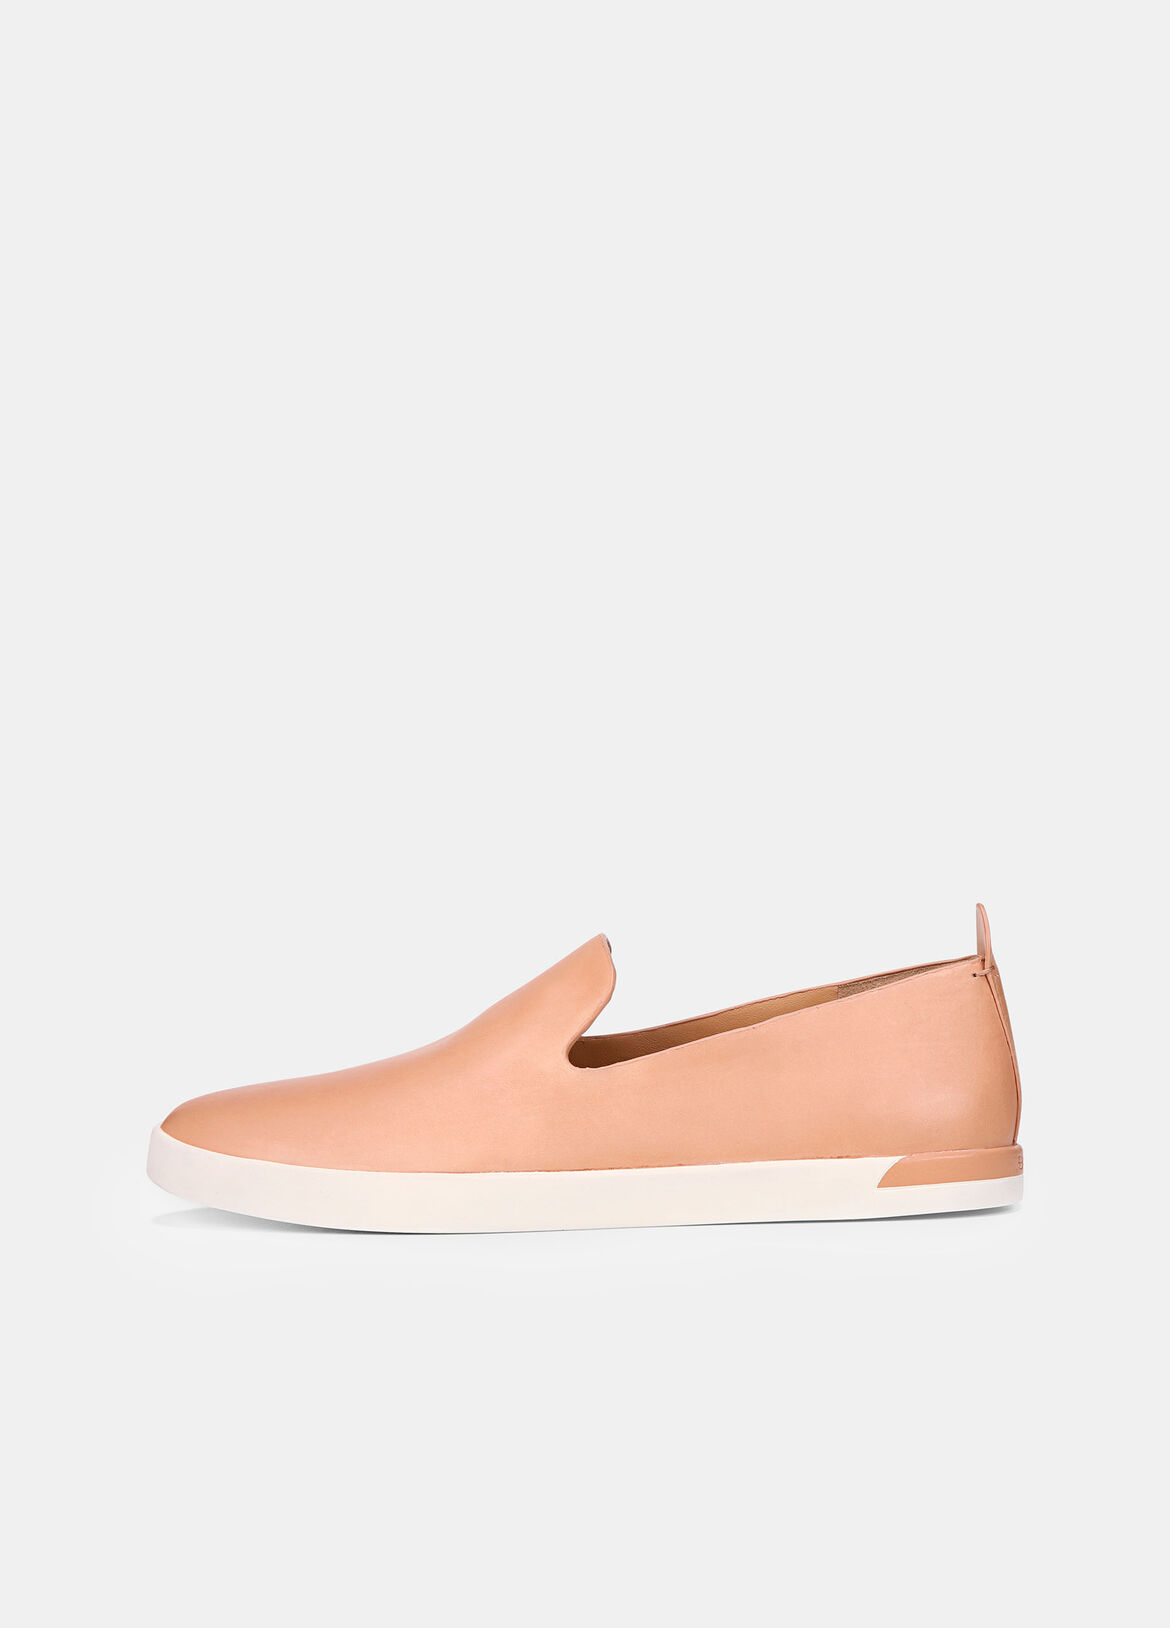 The Vero sneakers have a minimal shape cut from matte leather. They're set on equally understated rubber soles.